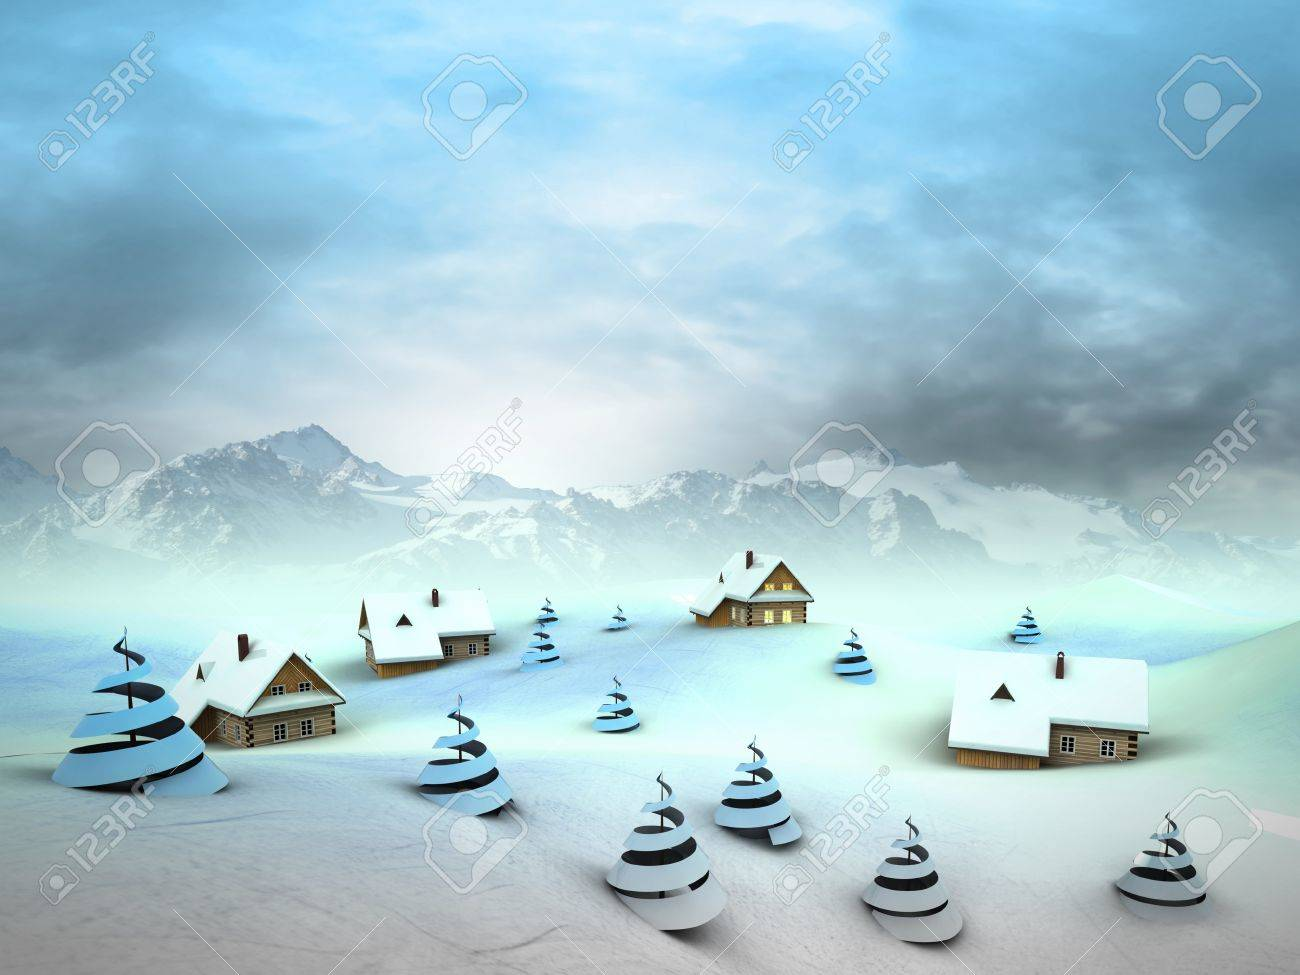 Winter village perspective with high mountain landscape illustration Stock Photo - 18827364